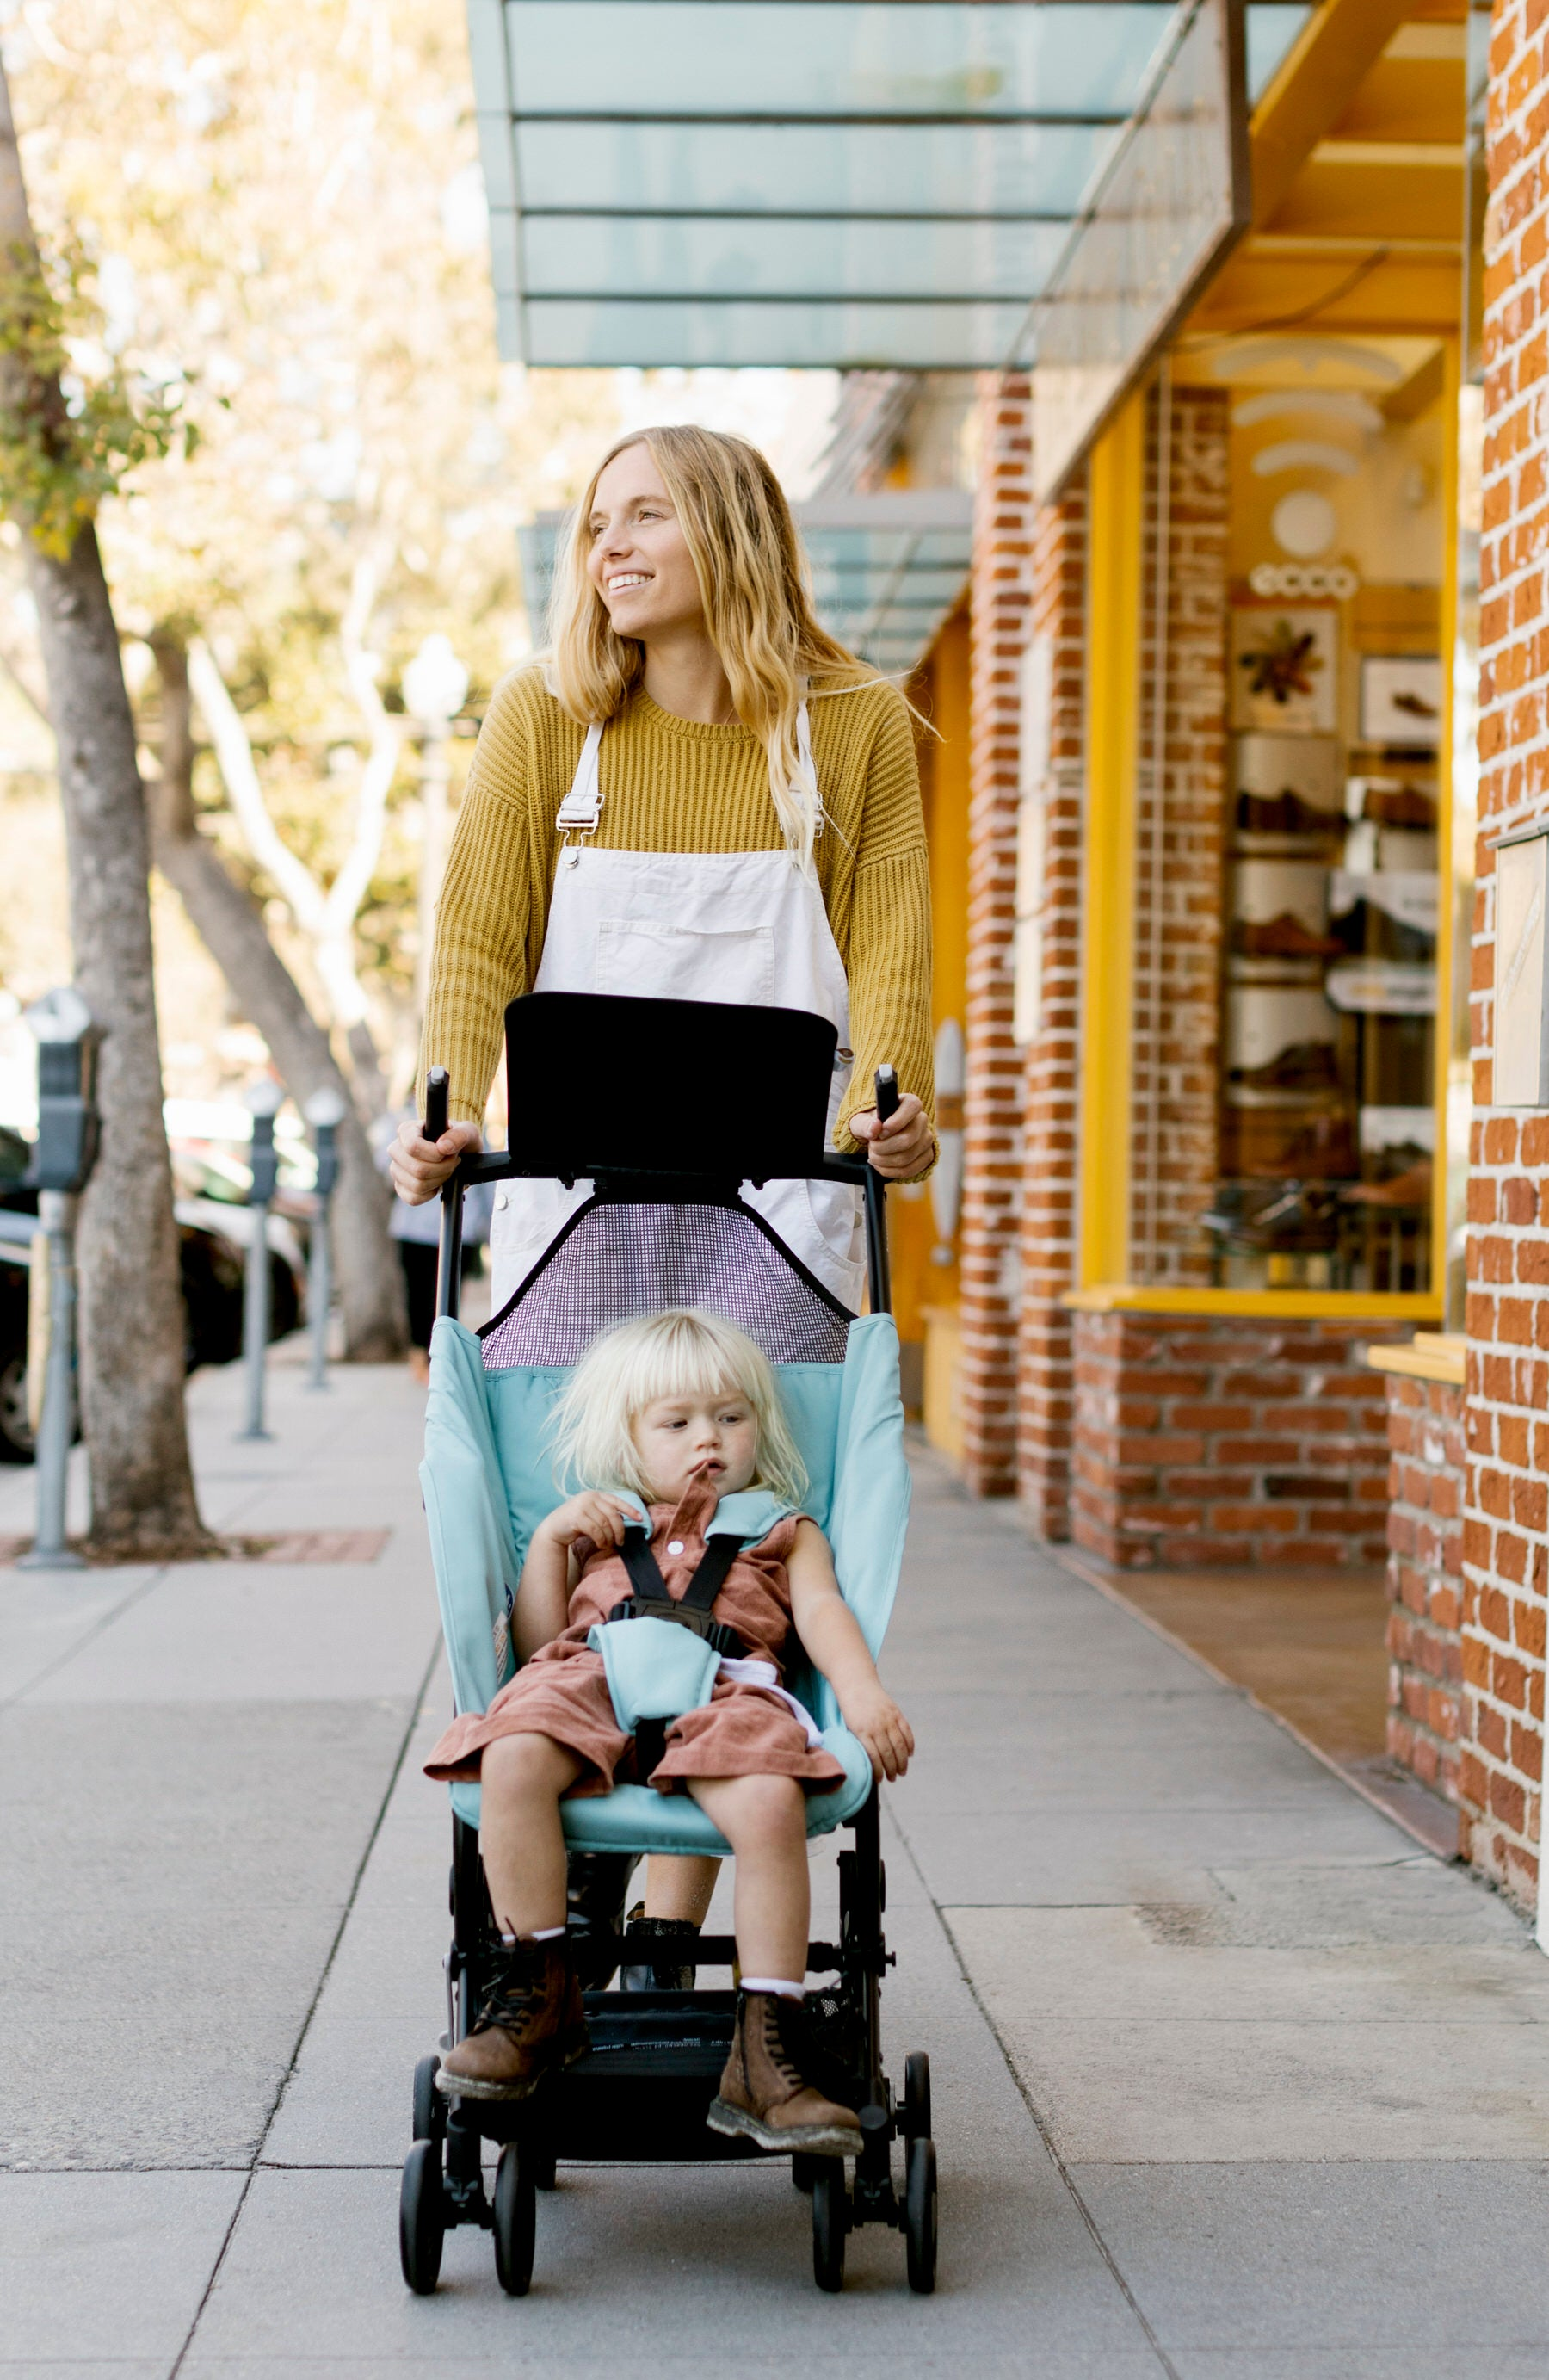 Leah pushes her daughter in the Poppy stroller downtown